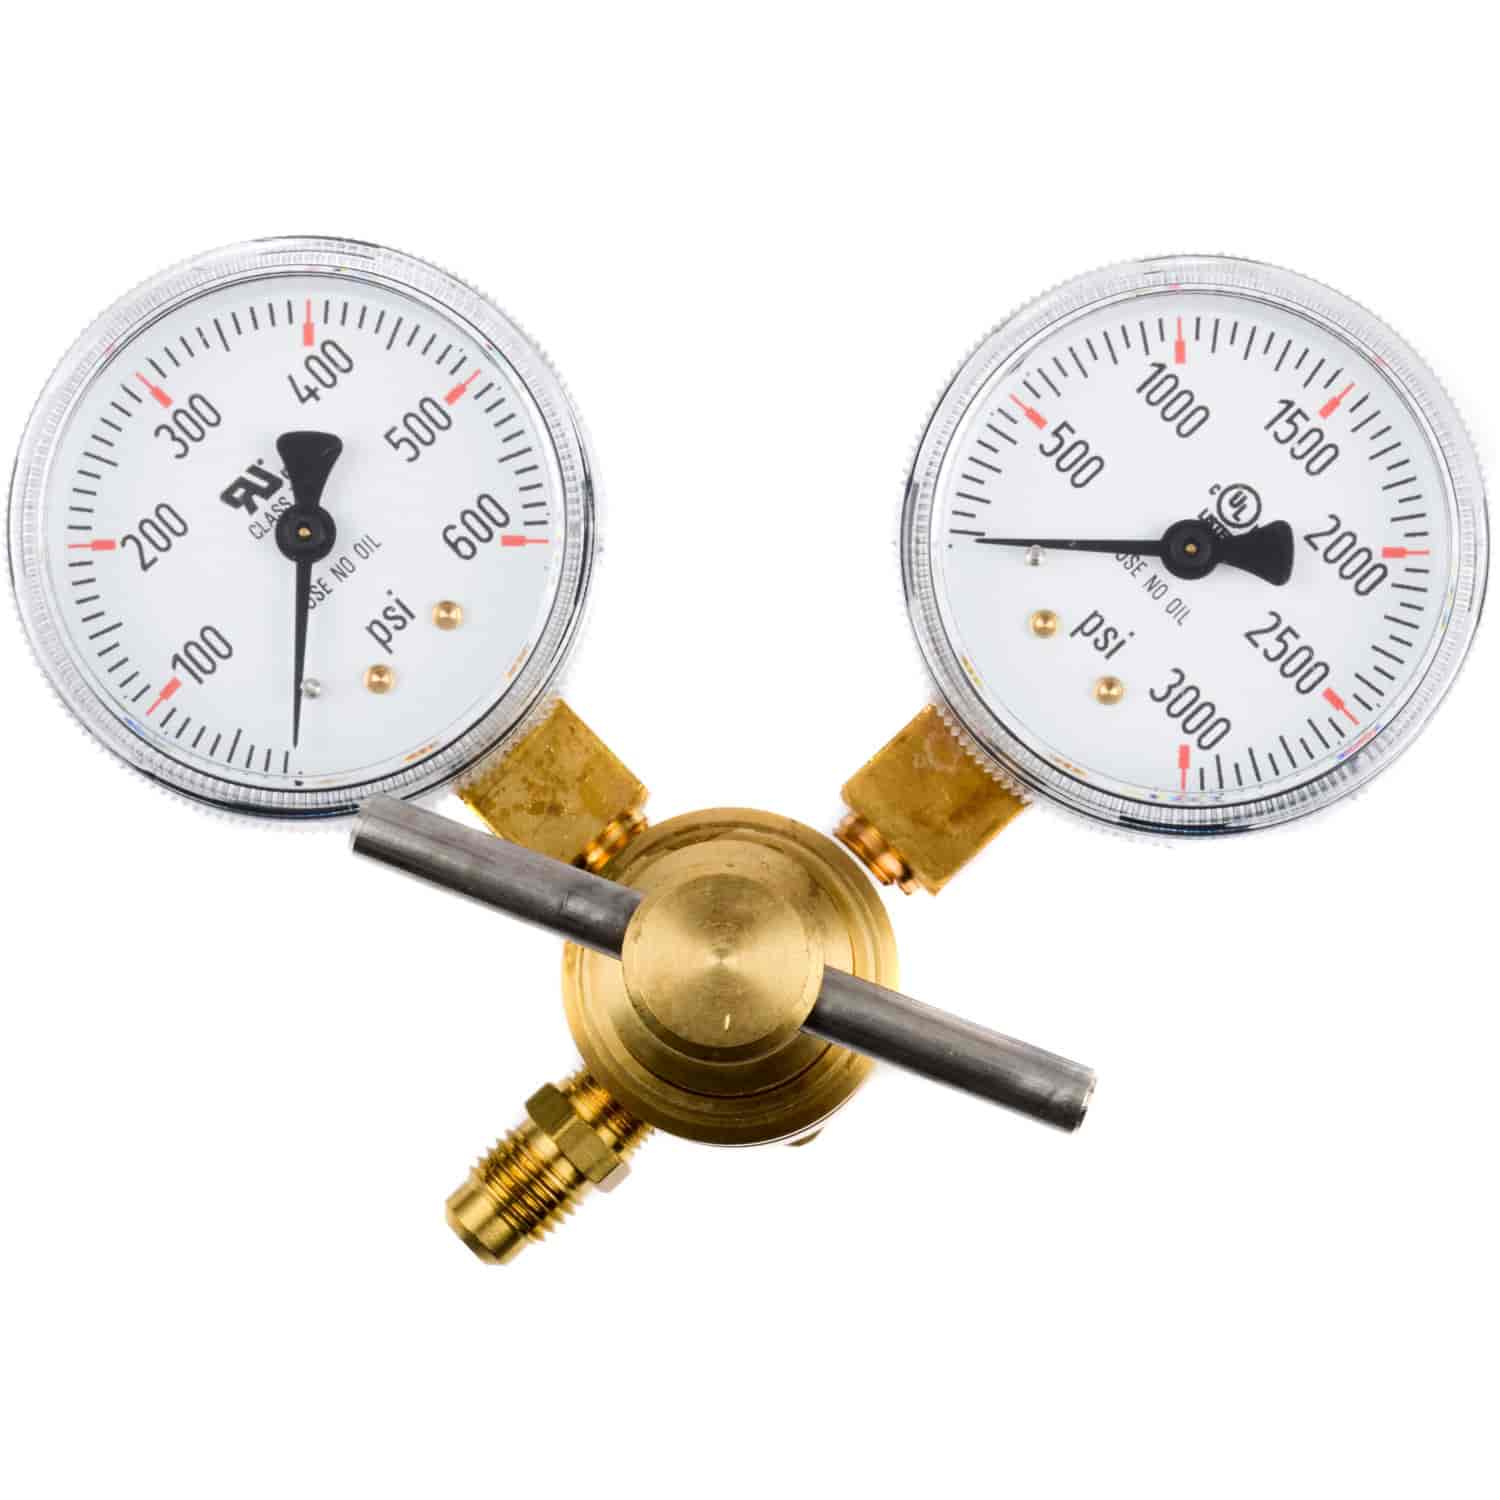 JEGS Performance Products 60200 - JEGS CO2 Pressure Regulator with Dual Gauges